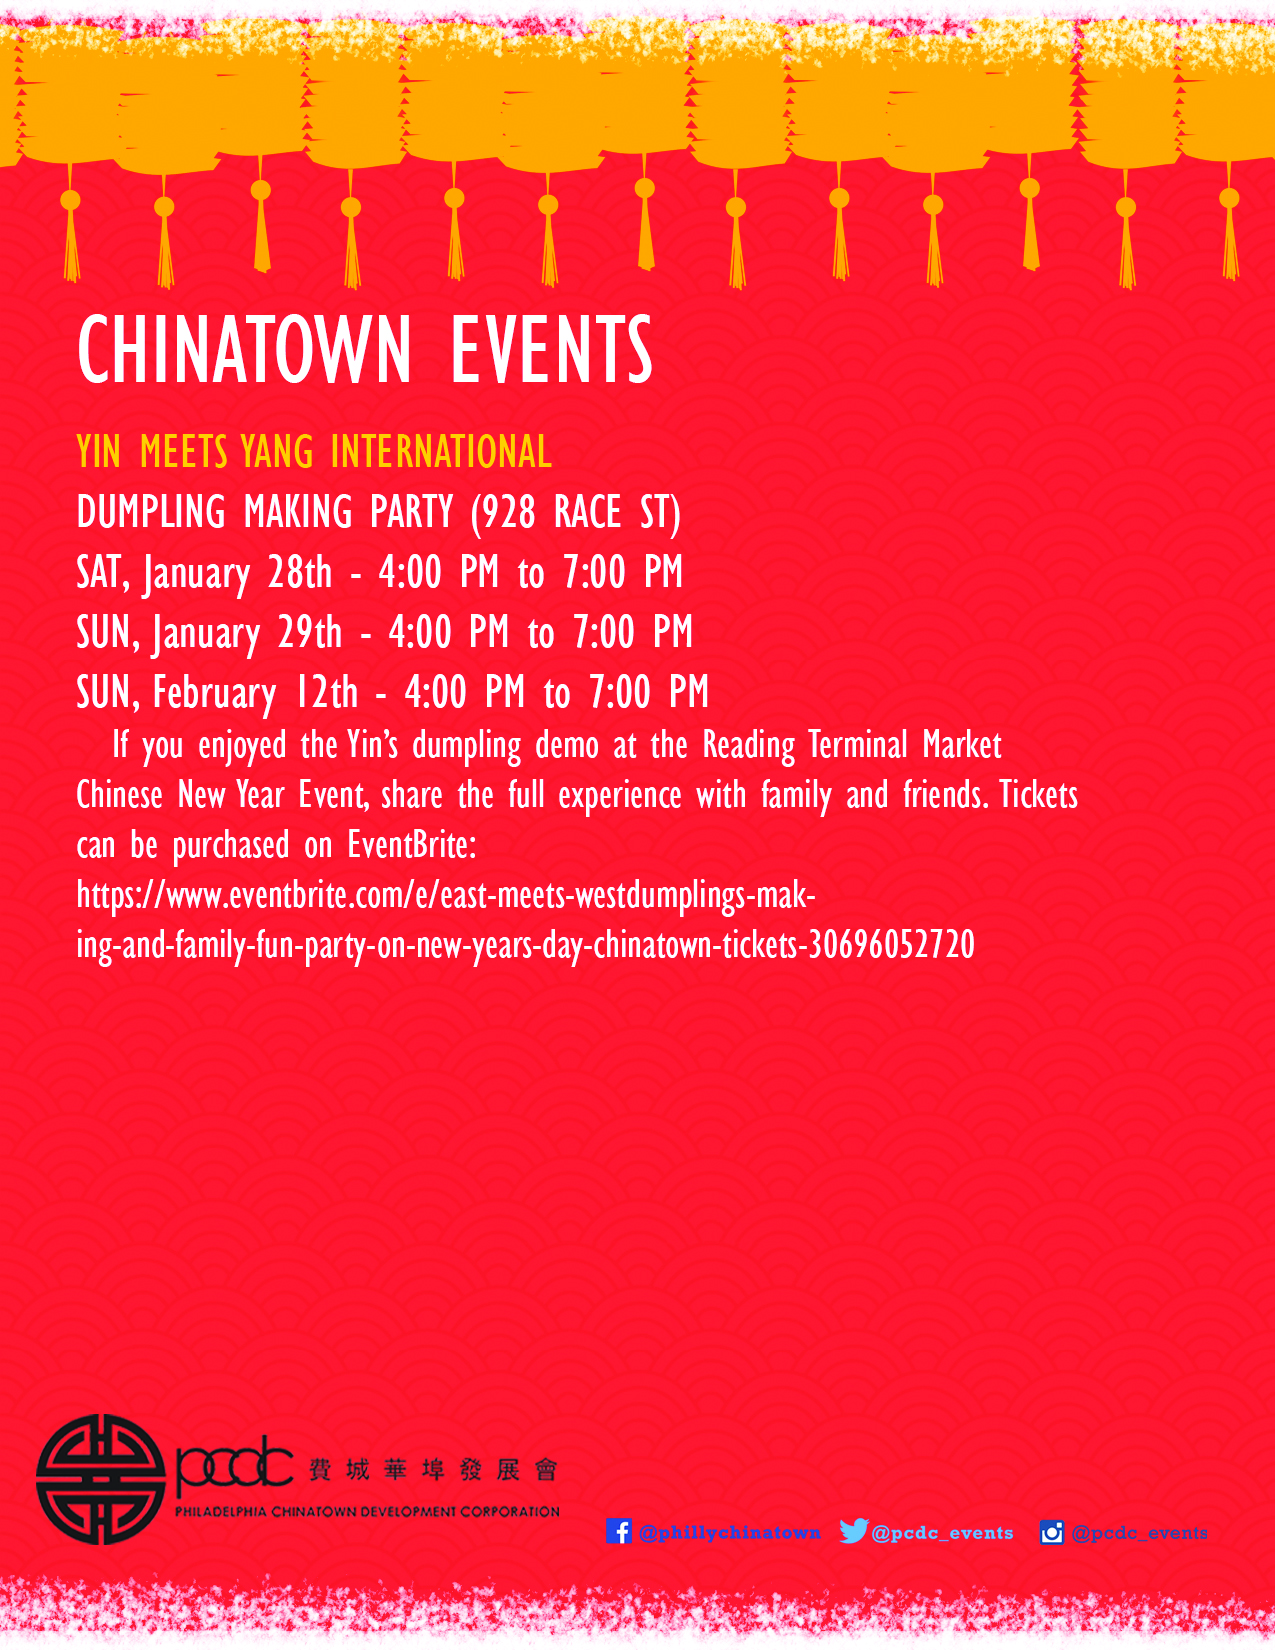 Chinatown Events 2